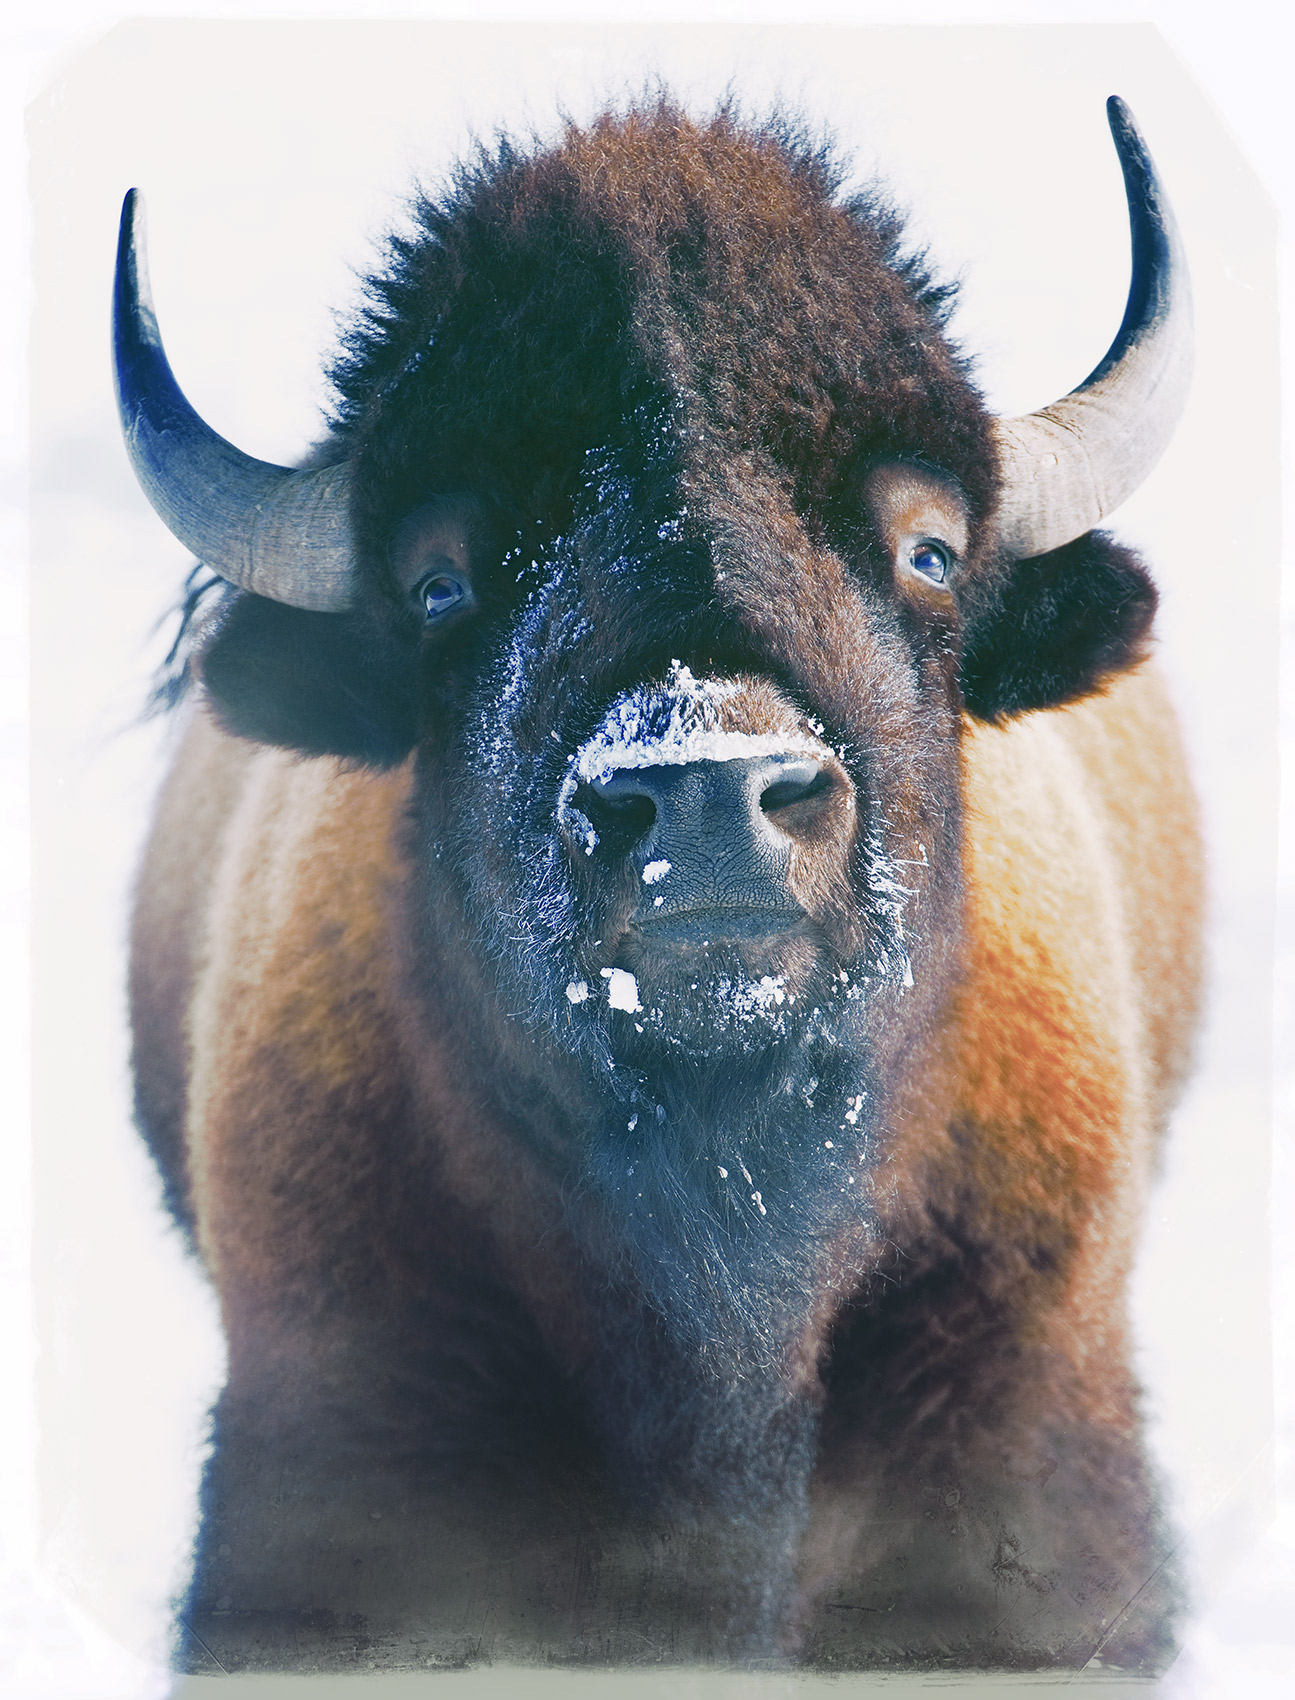 Staring at a Bison in the Winter